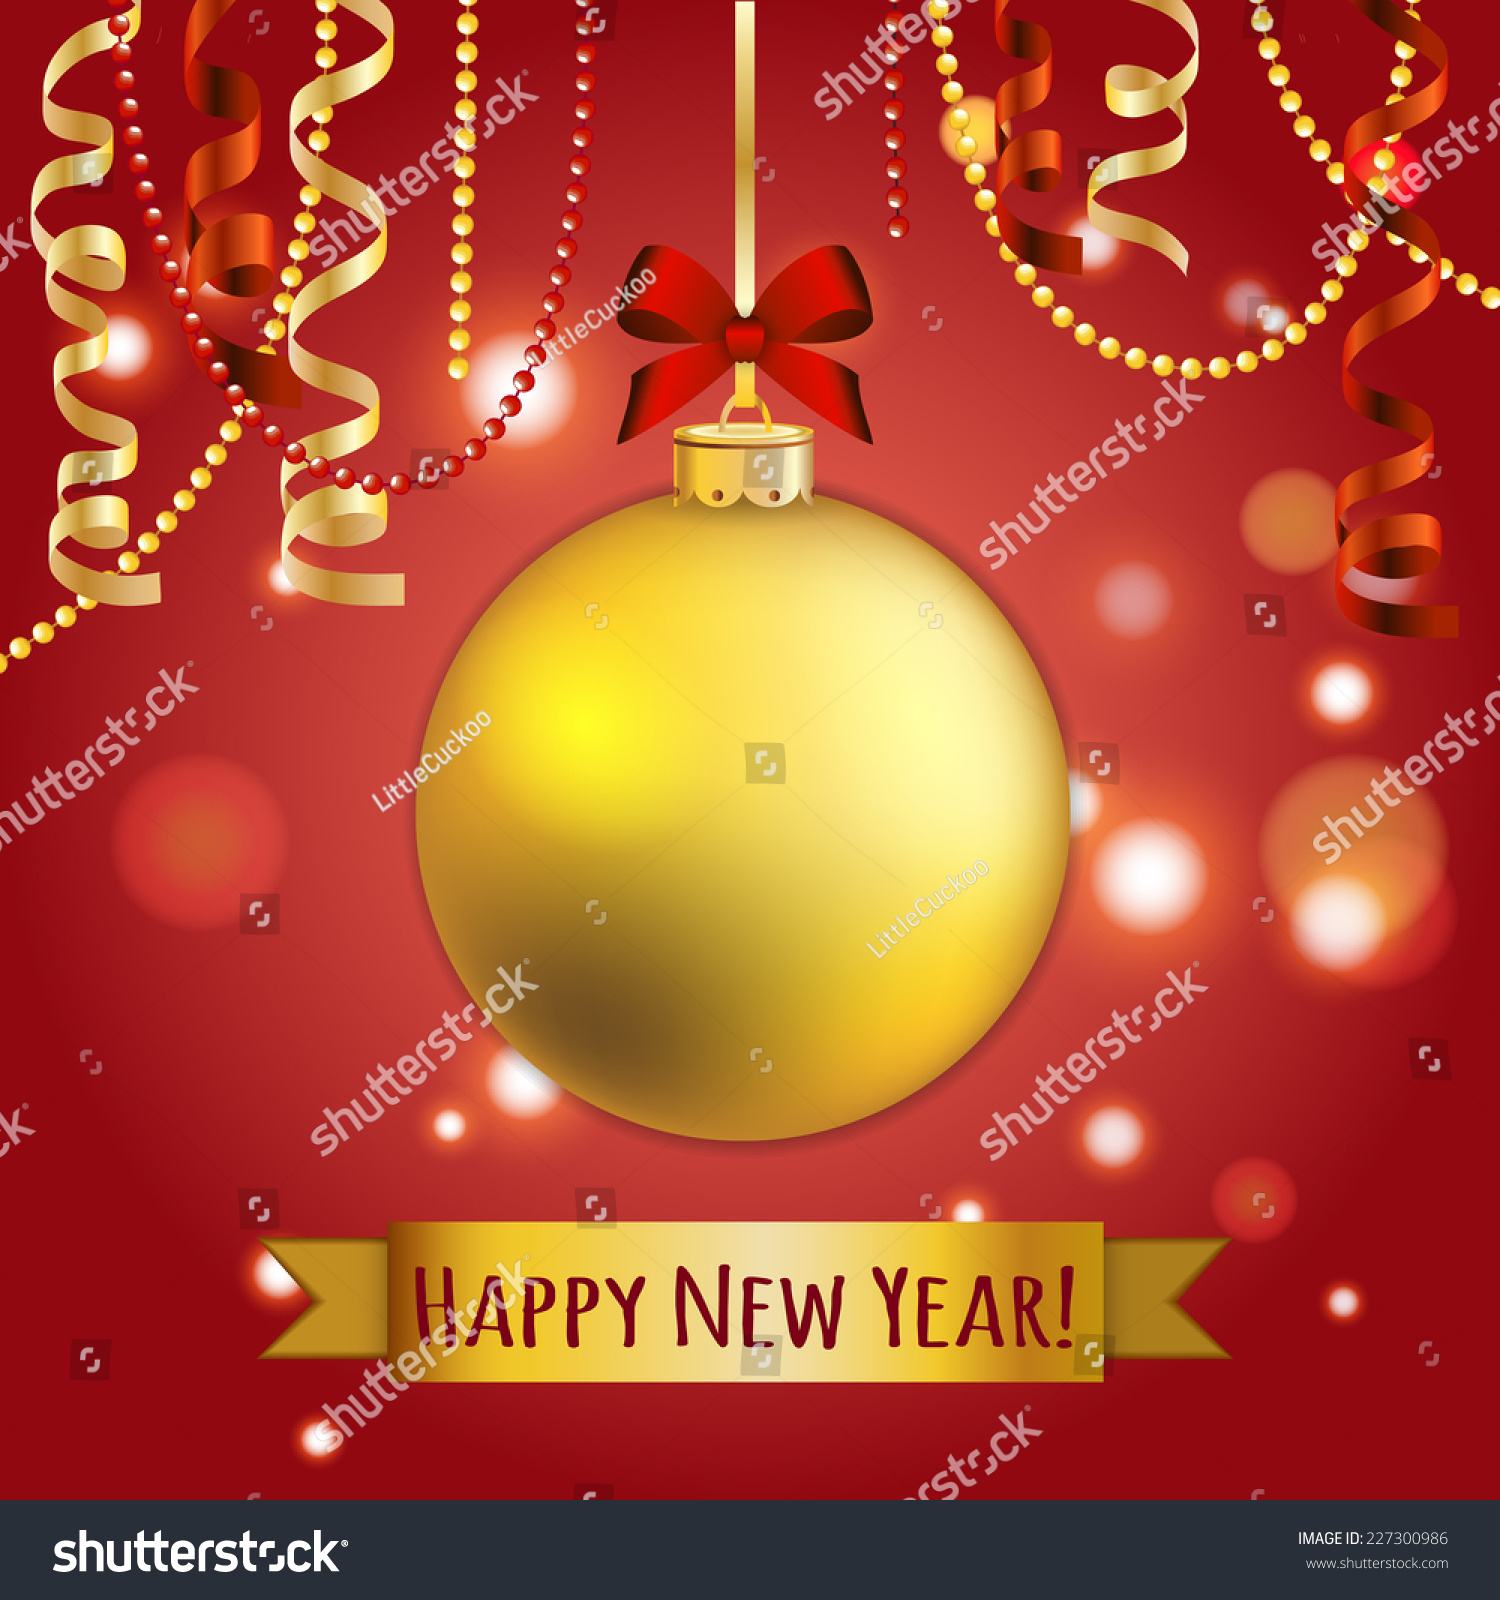 New year greeting card christmas ball stock vector 227300986 new year greeting card christmas ball with bow and ribbon xmas decorations sparkles kristyandbryce Images